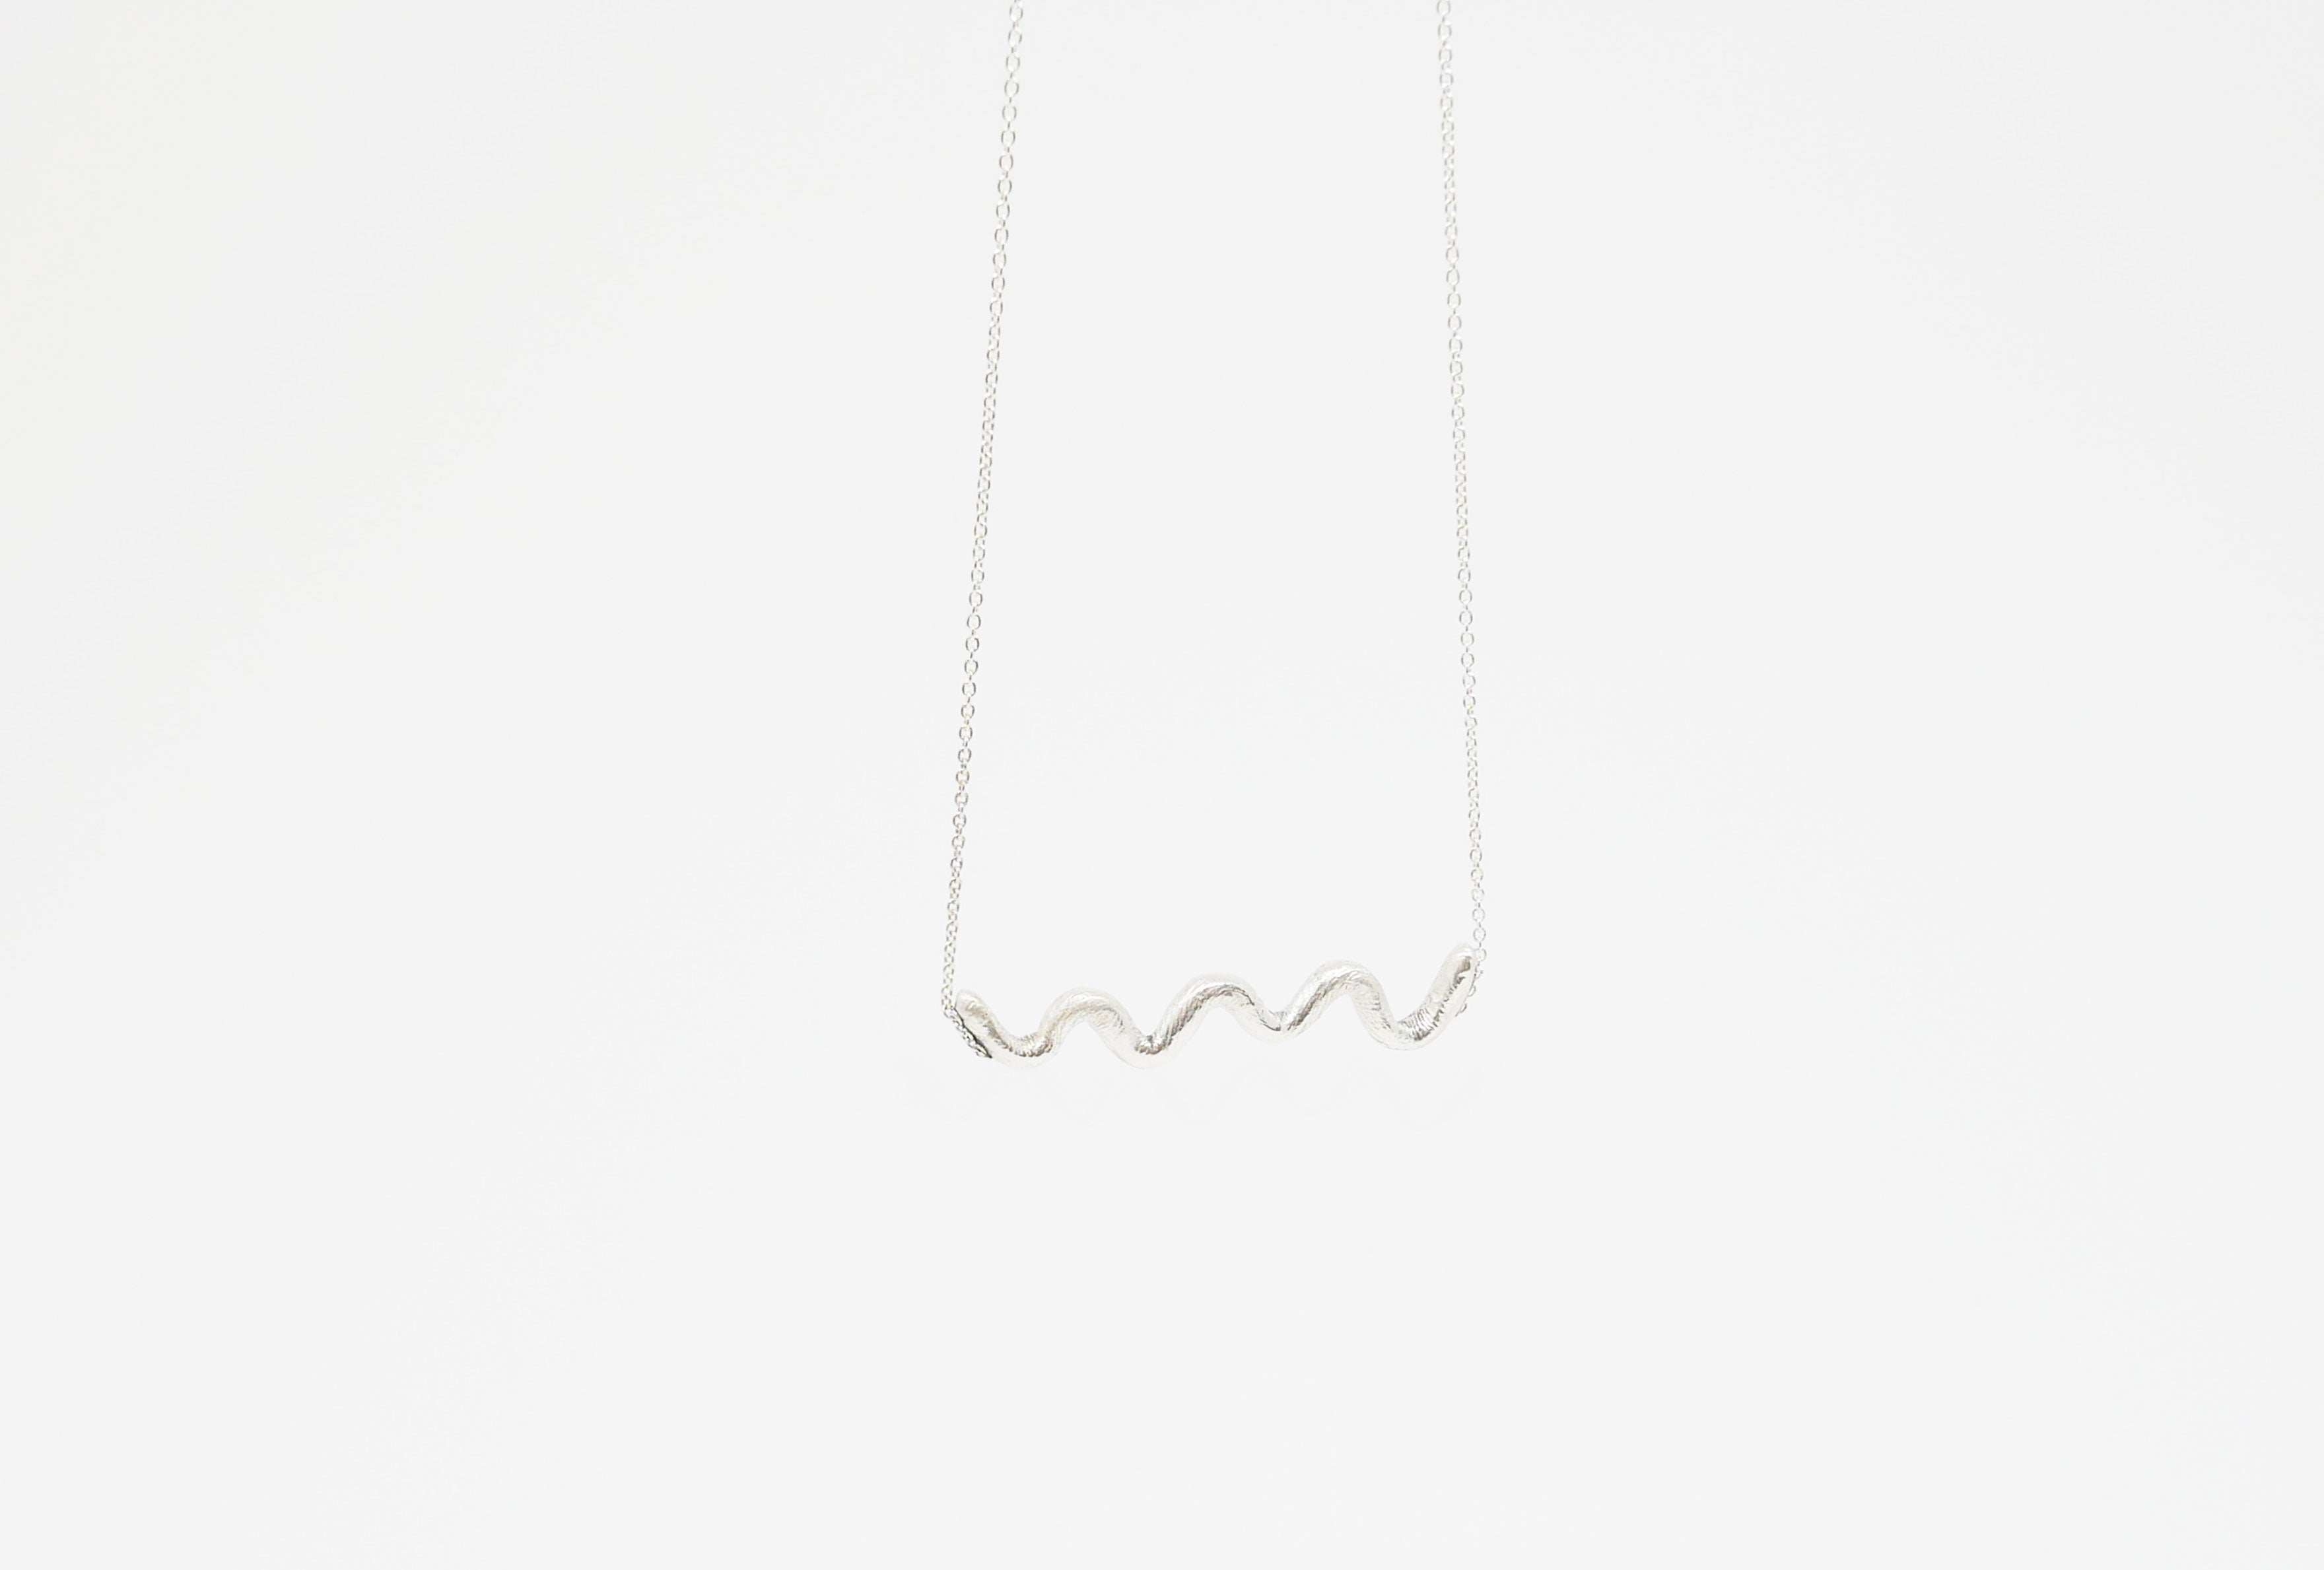 Collier Nouvelle Vague en argent